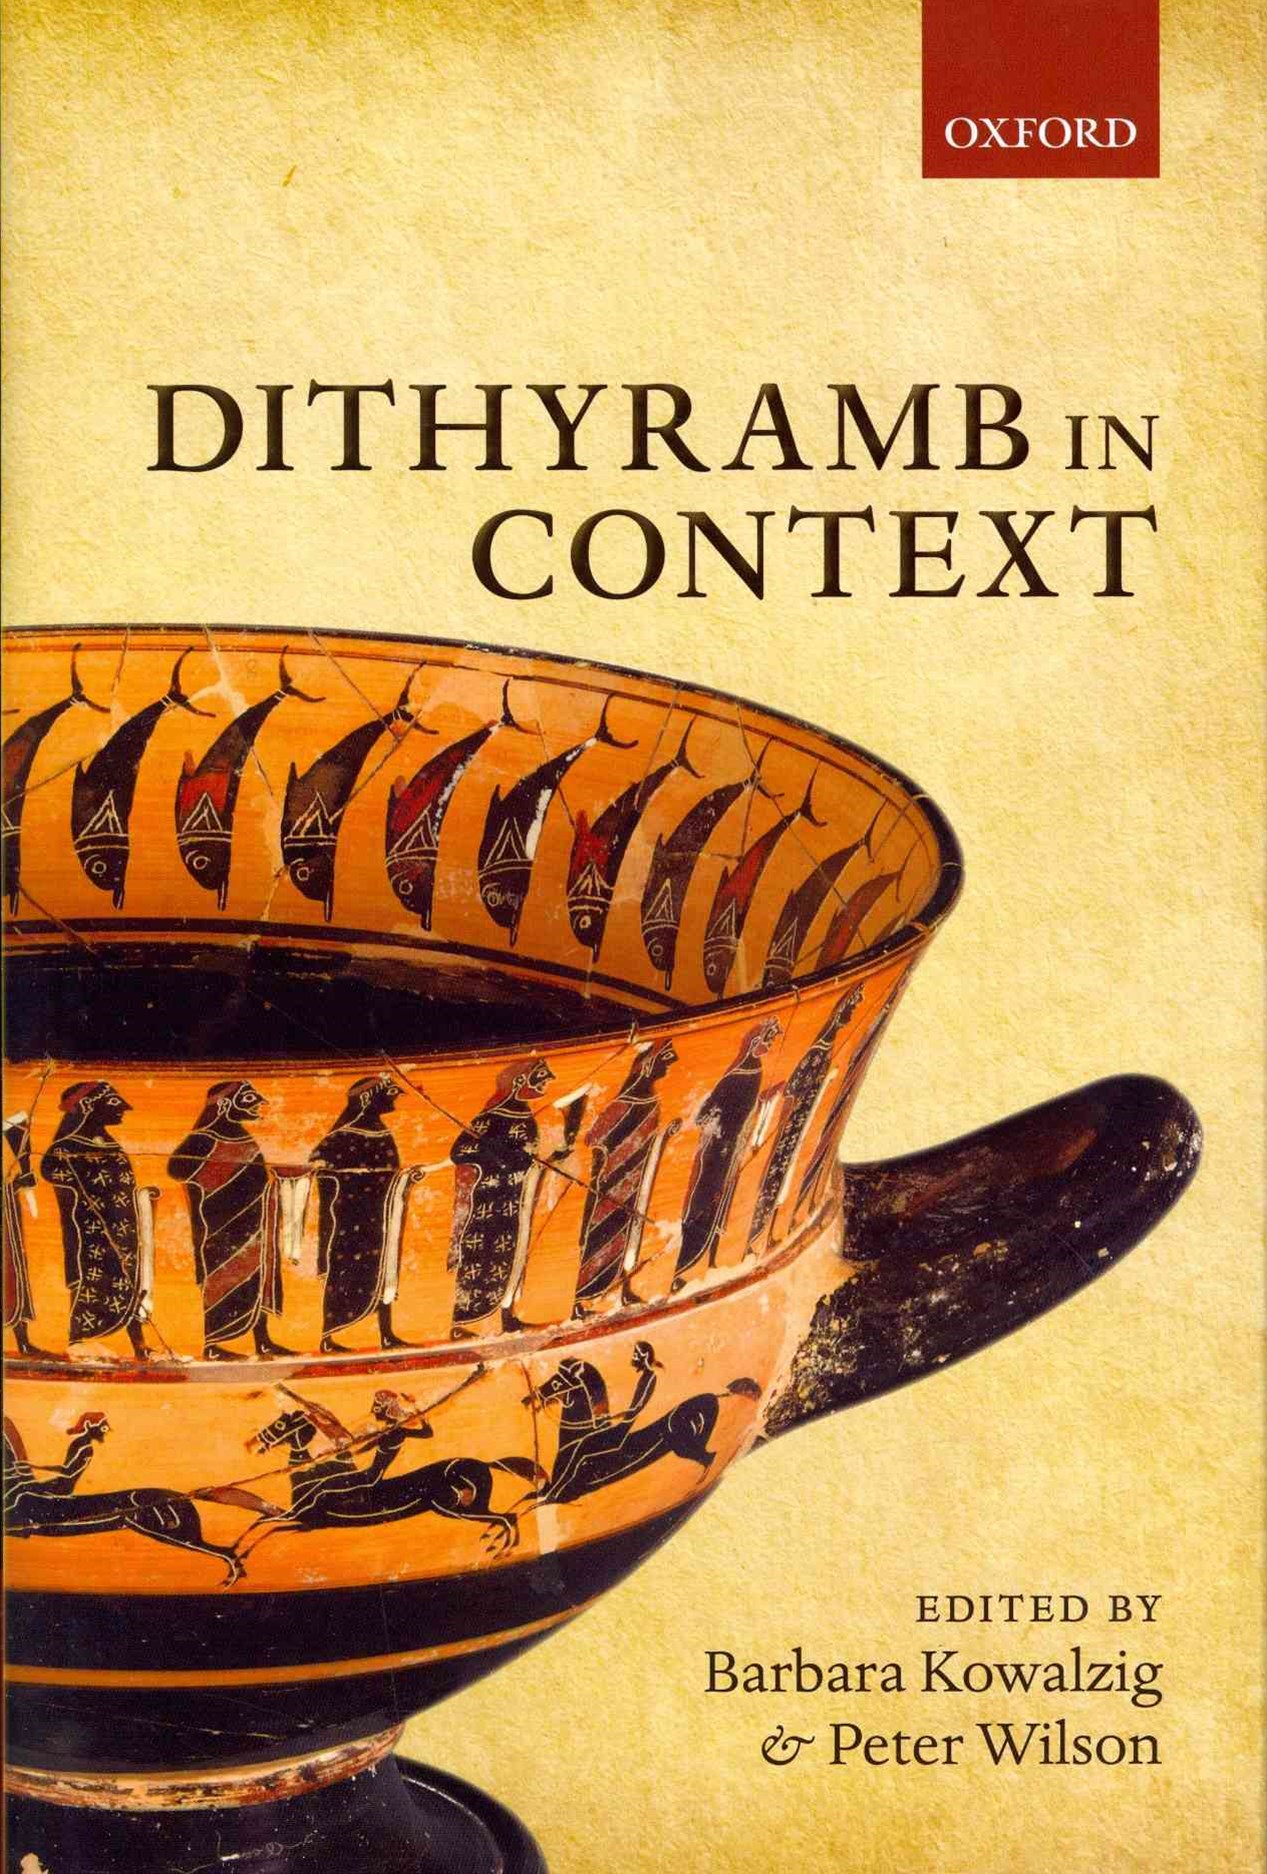 Dithyramb in Context